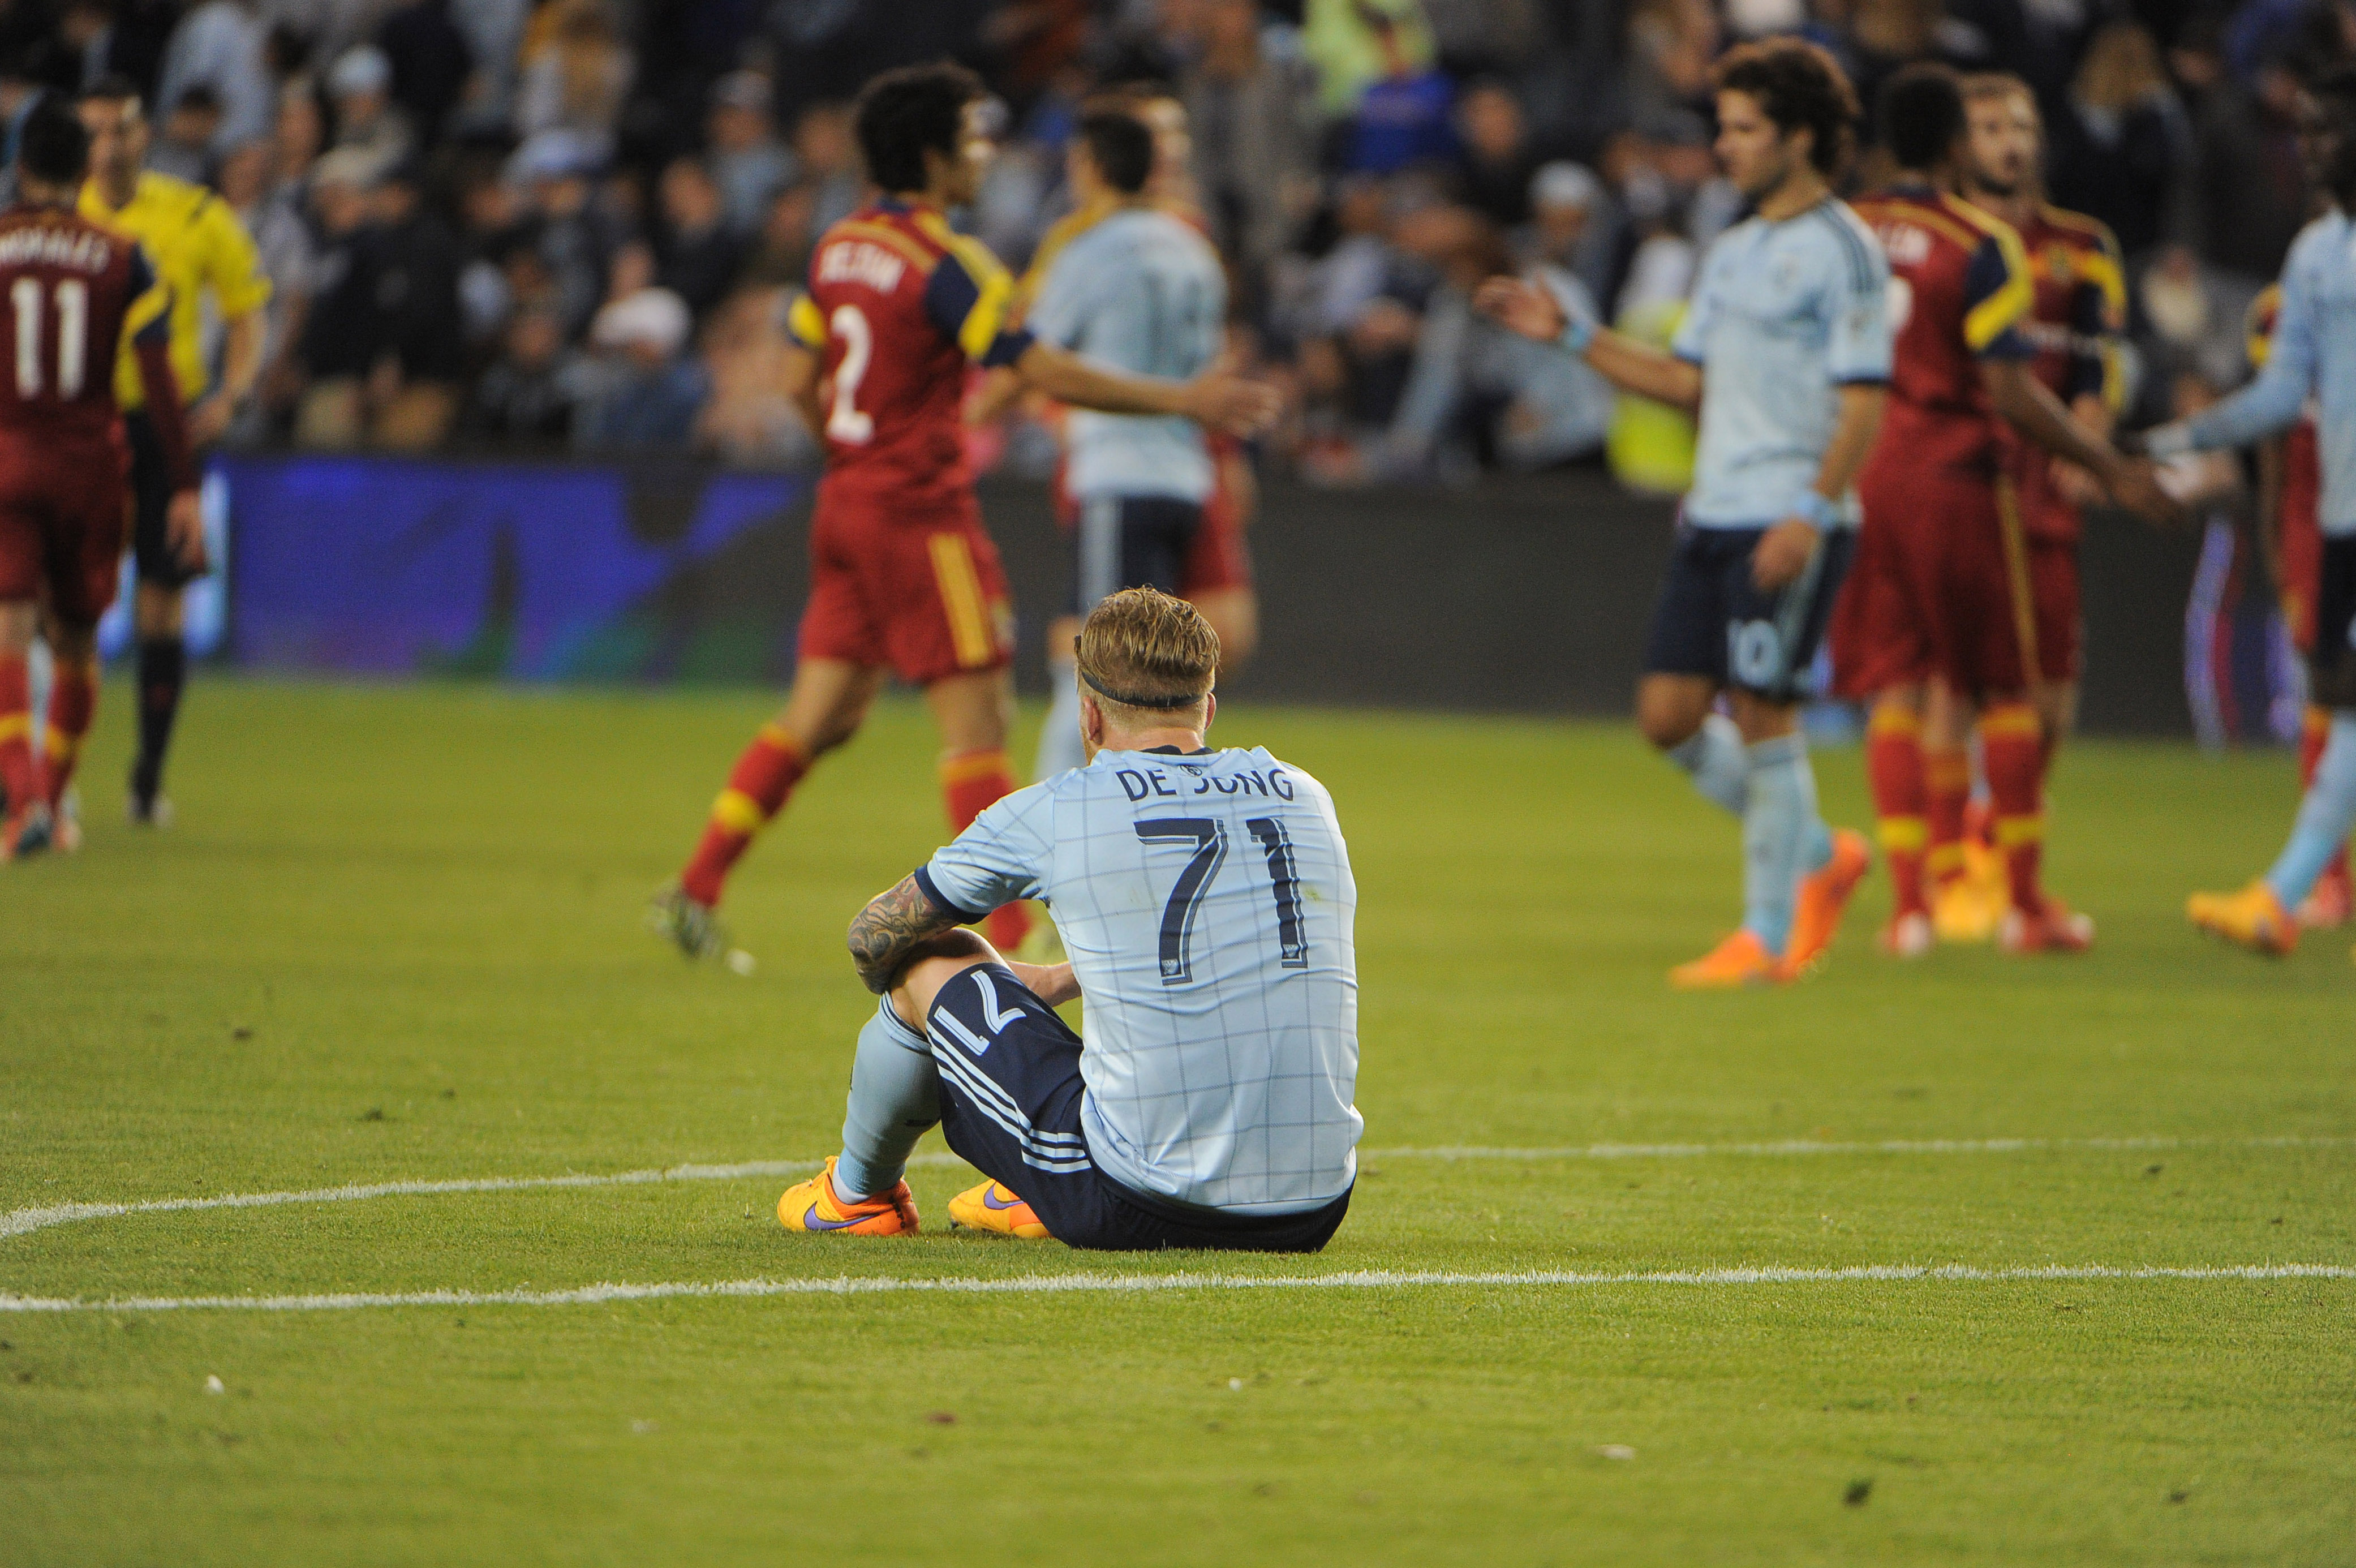 de Jong could not hold onto a starting spot with SKC